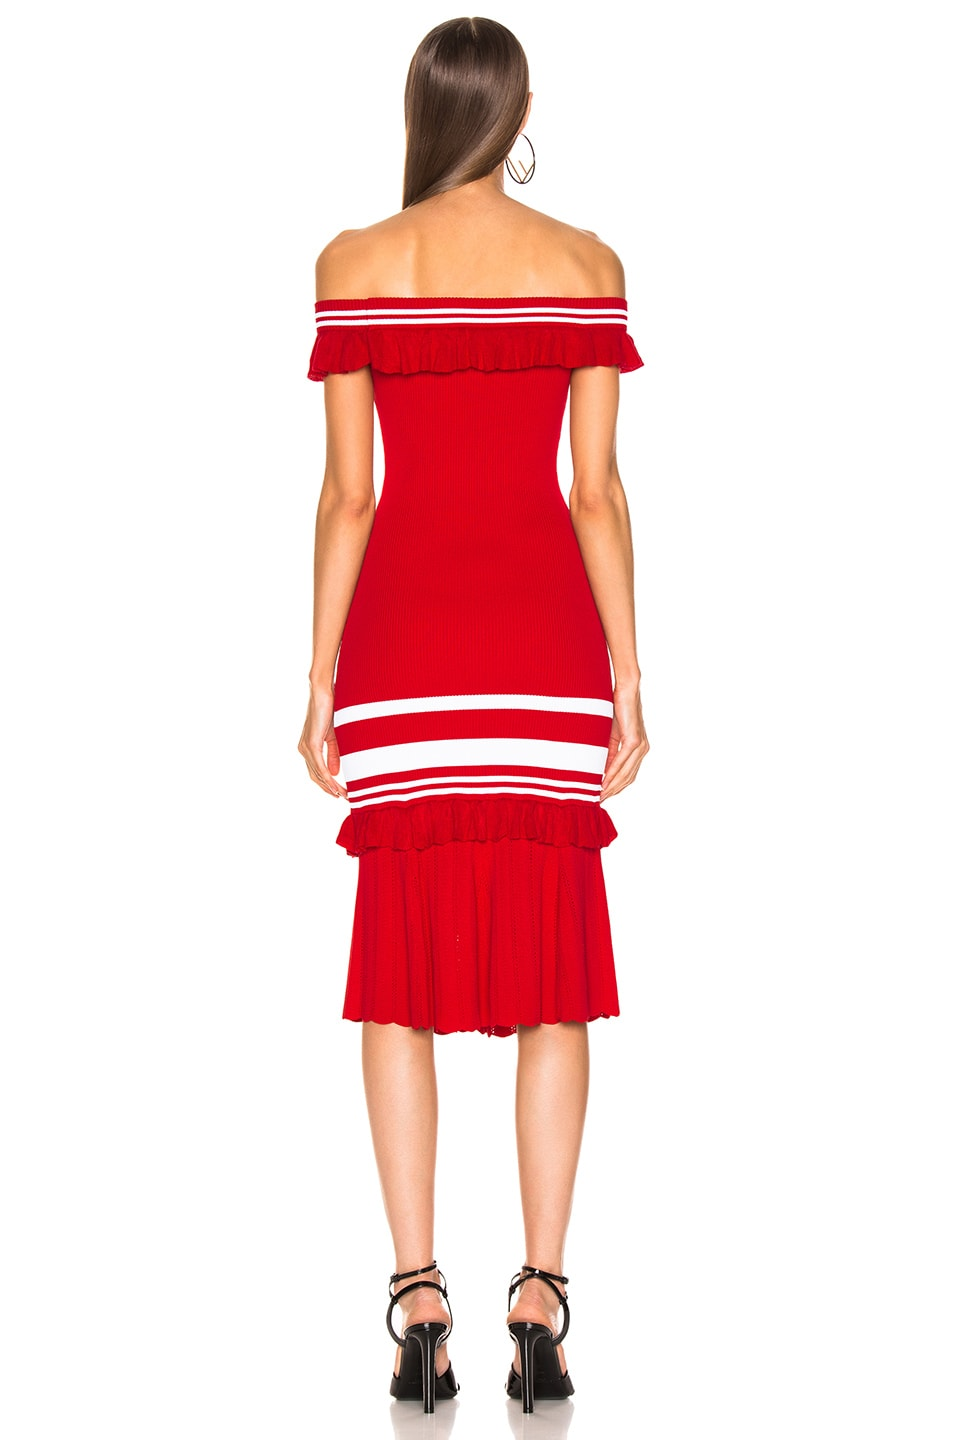 Image 3 of JONATHAN SIMKHAI for FWRD Off the Shoulder Knit Dress in Red & White